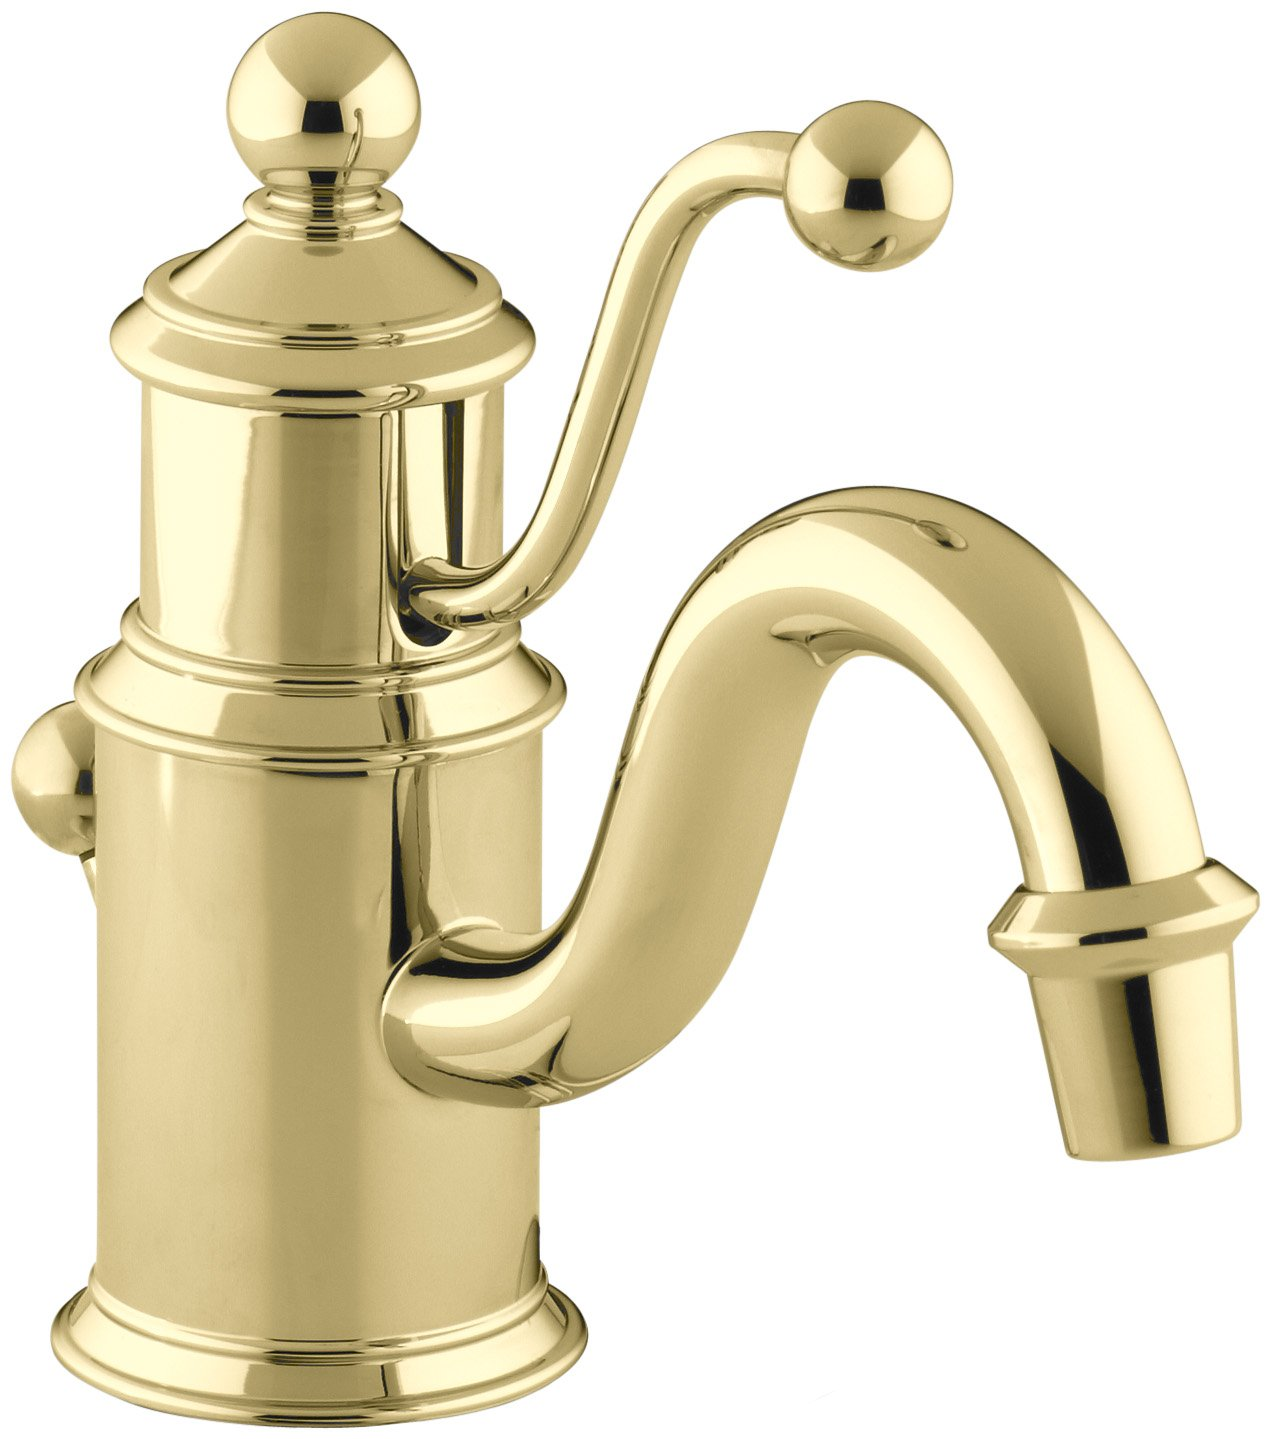 KOHLER K-139-PB Antique Single Hole Lavatory Faucet, Vibrant ...